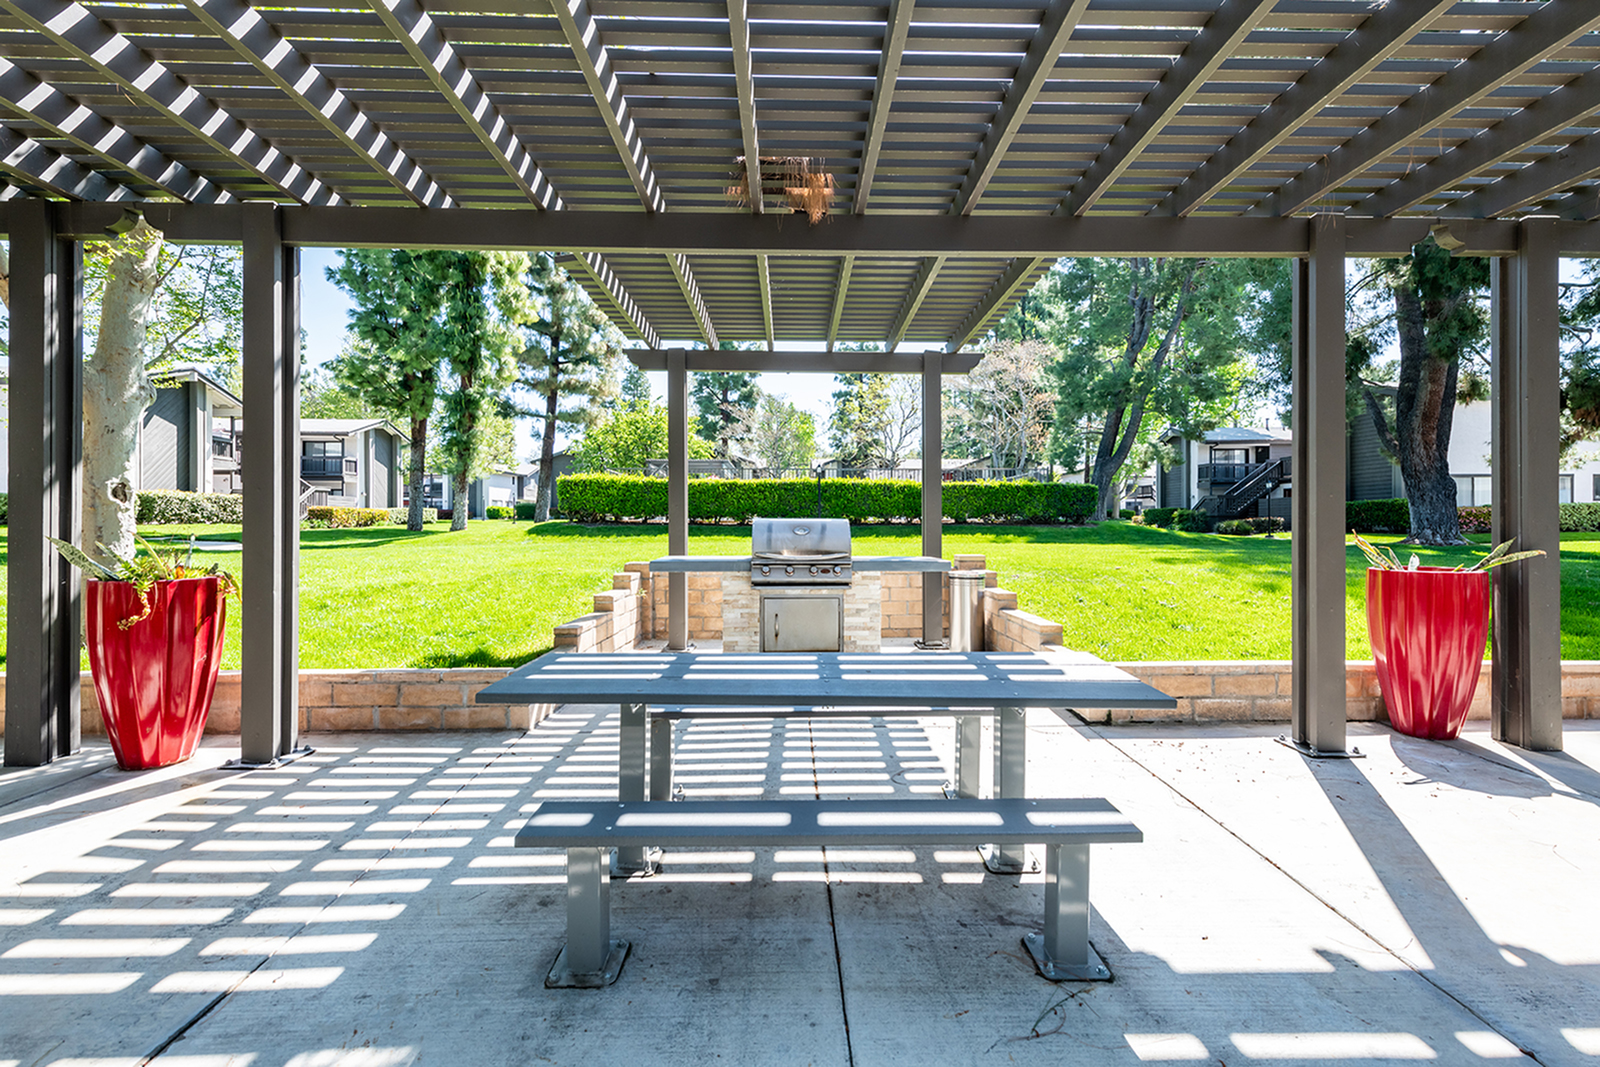 Covered grills and picnic tables